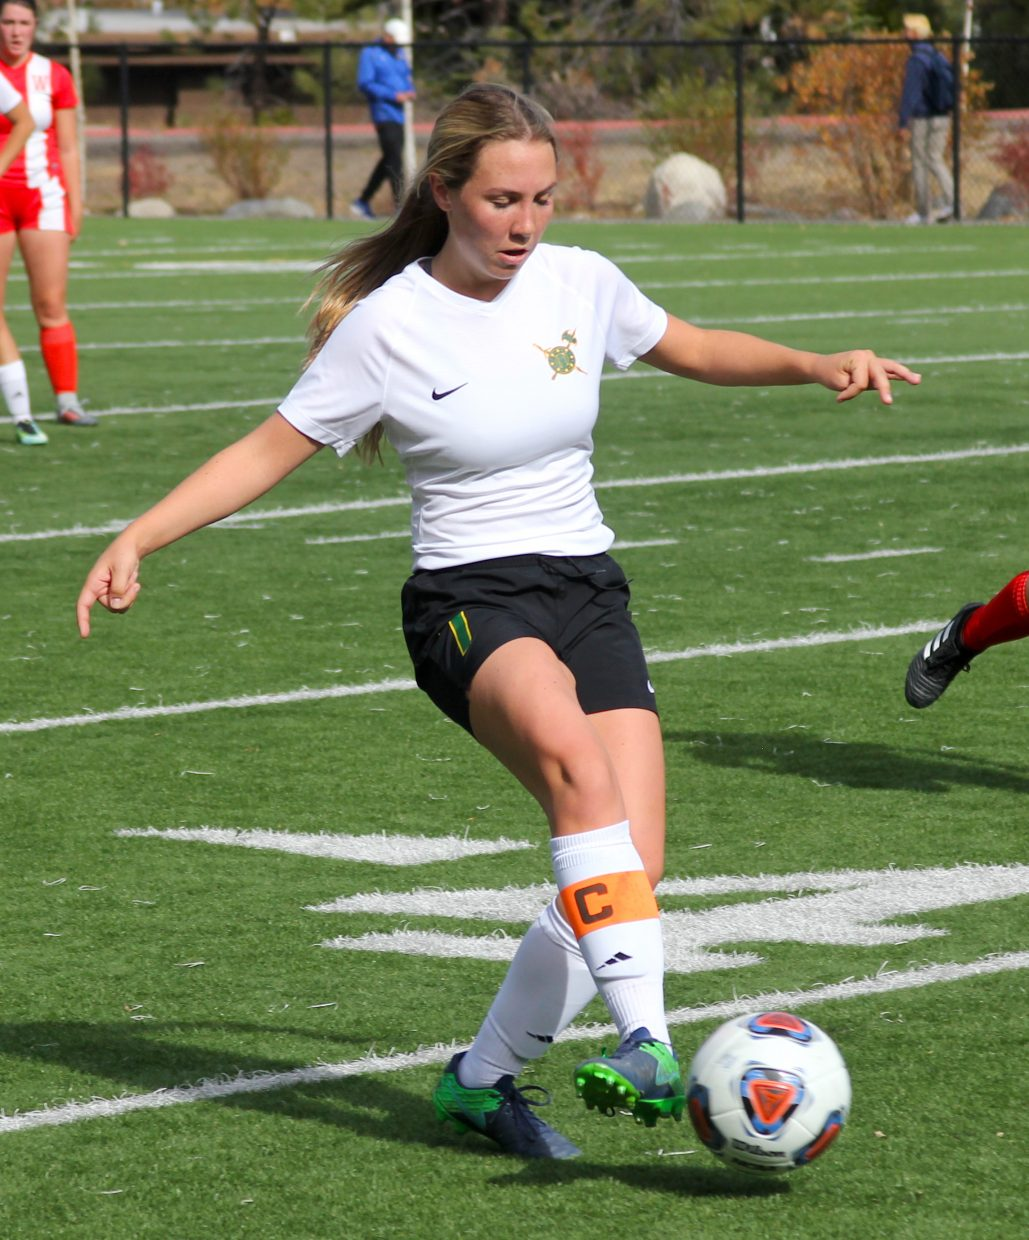 Incline co-captain Lauren Golden makes a pass.